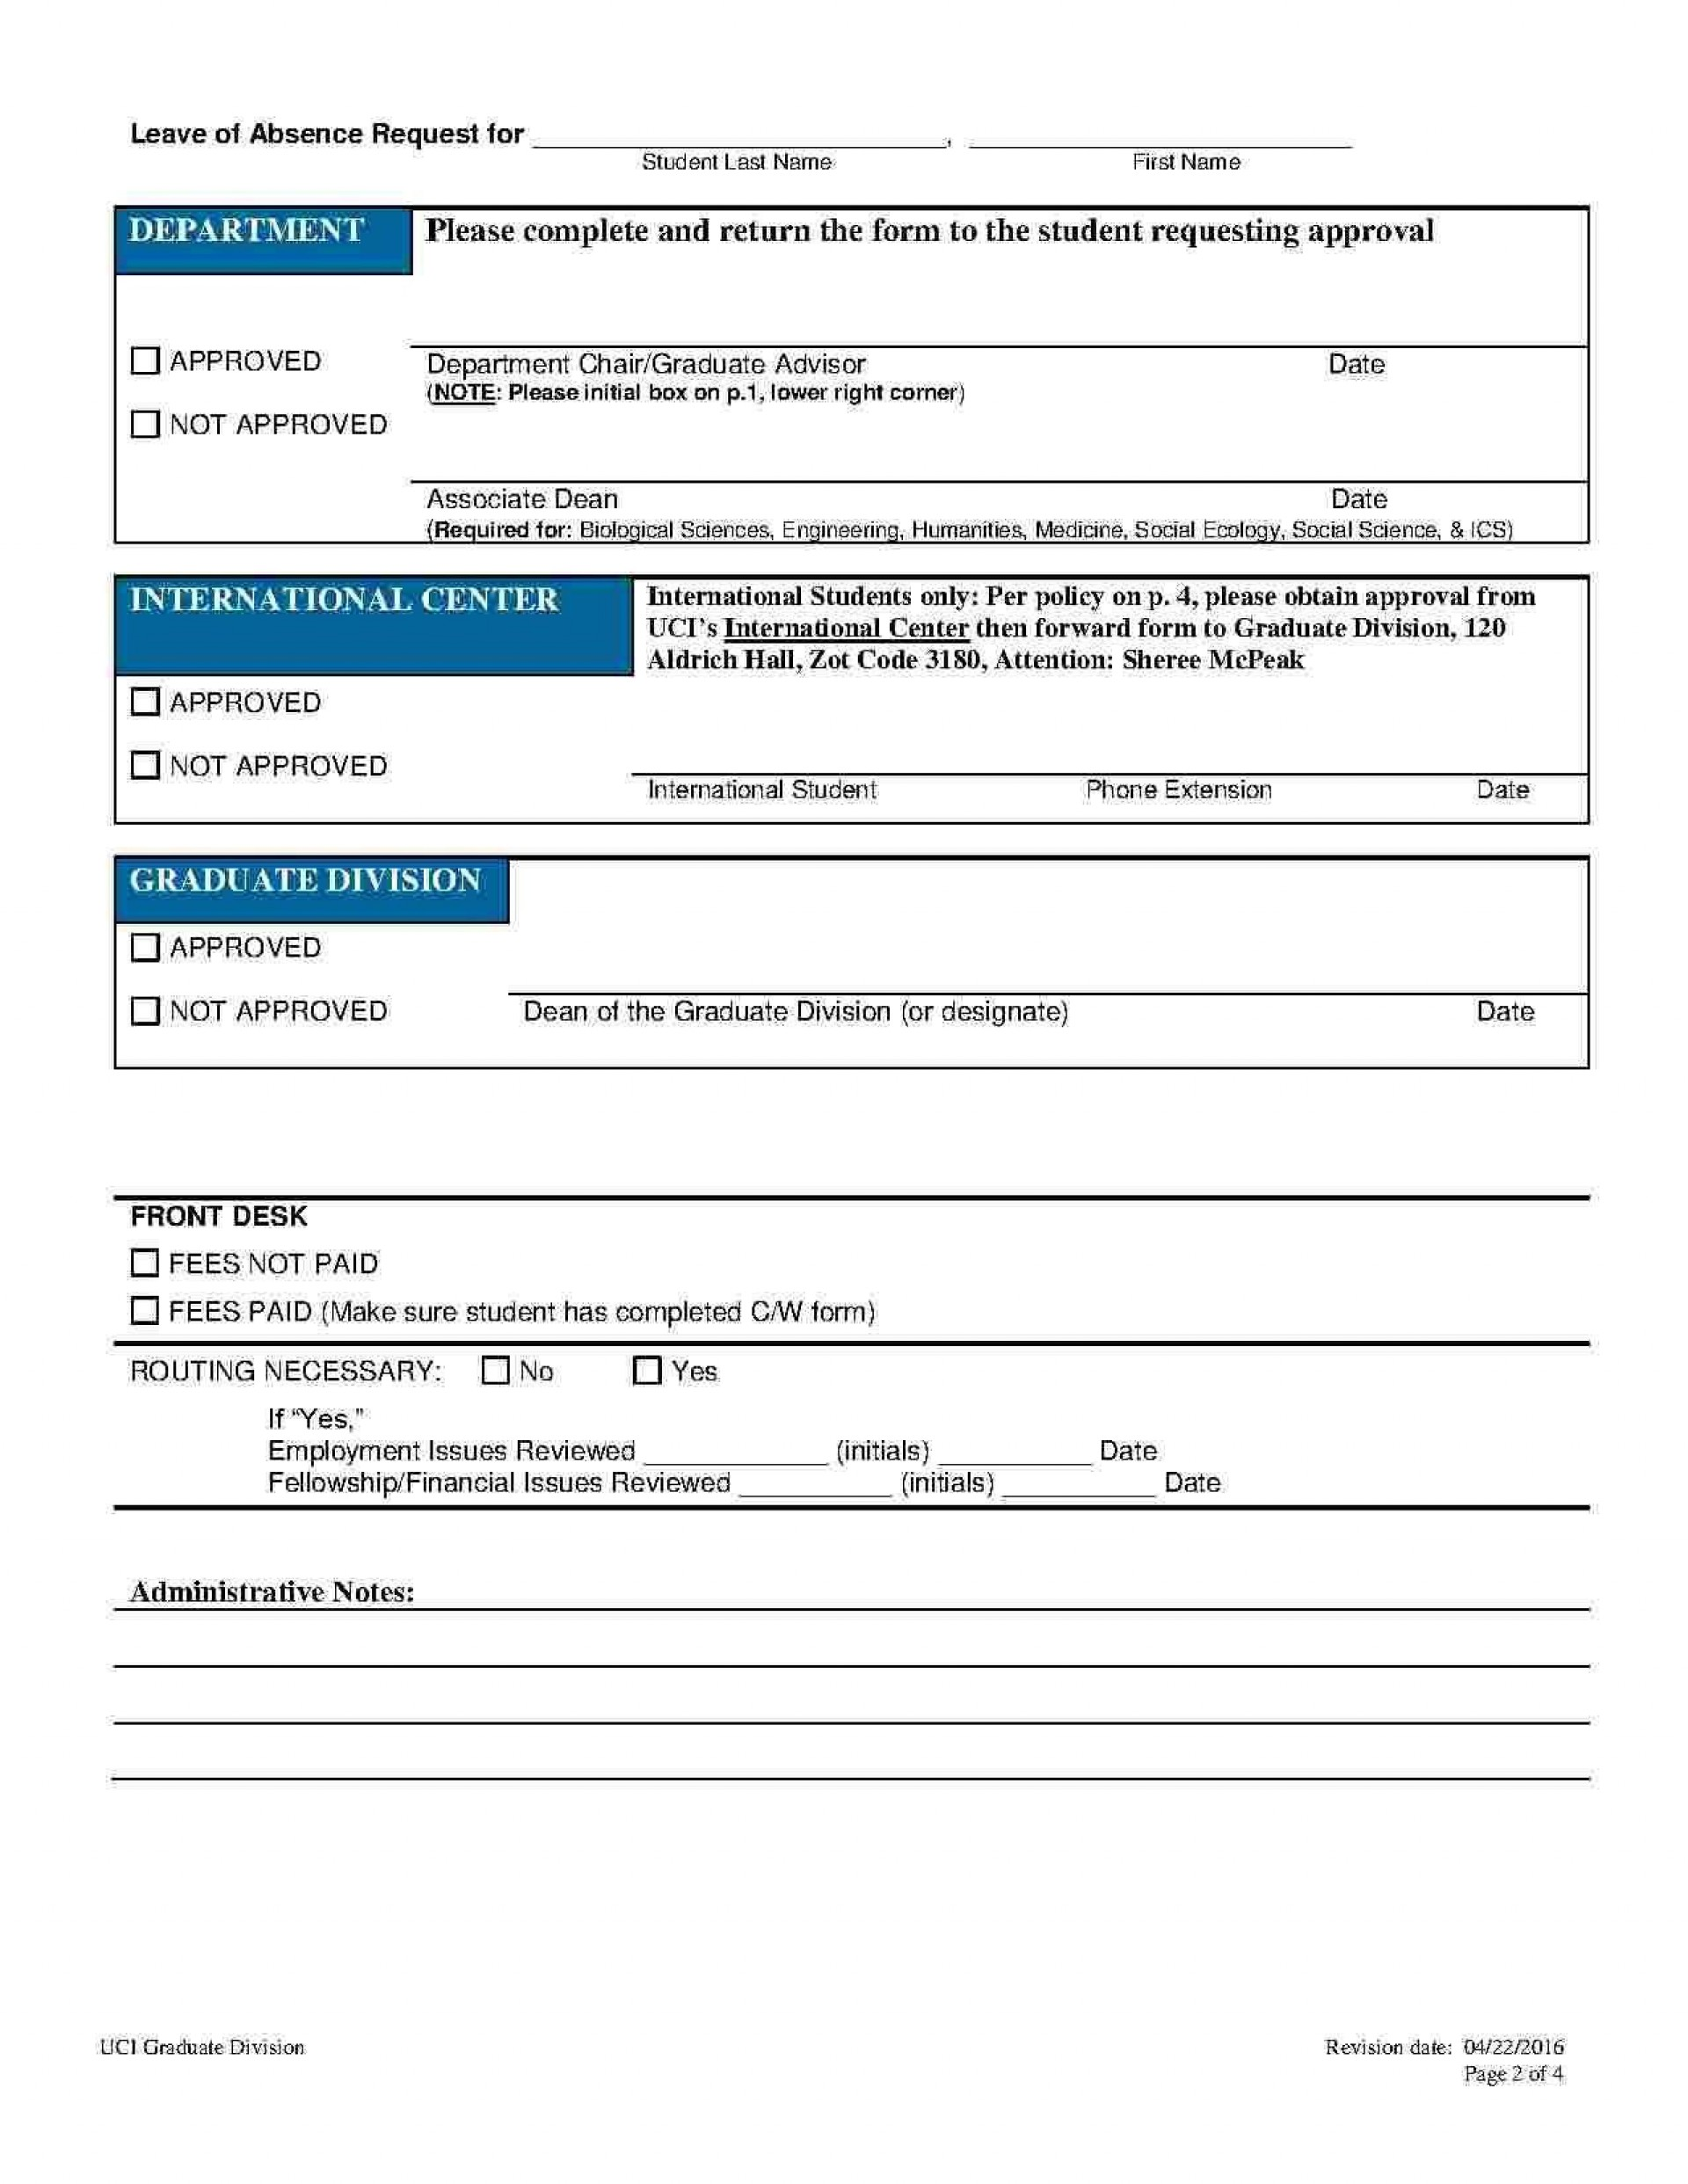 002 Shocking Leave Of Absence Form Template Example  Medical Request Free1920